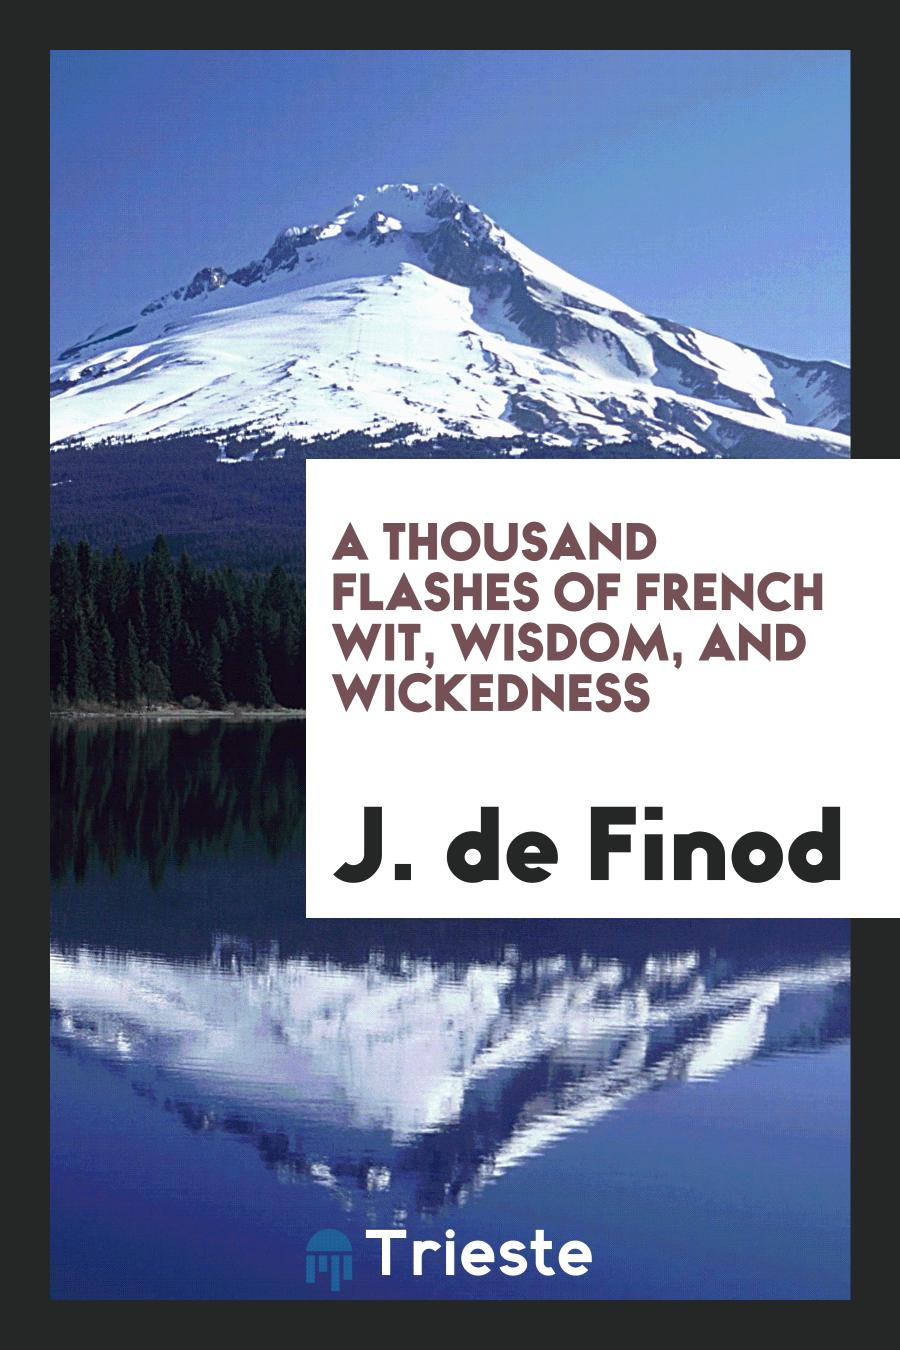 J. de Finod - A Thousand Flashes of French Wit, Wisdom, and Wickedness